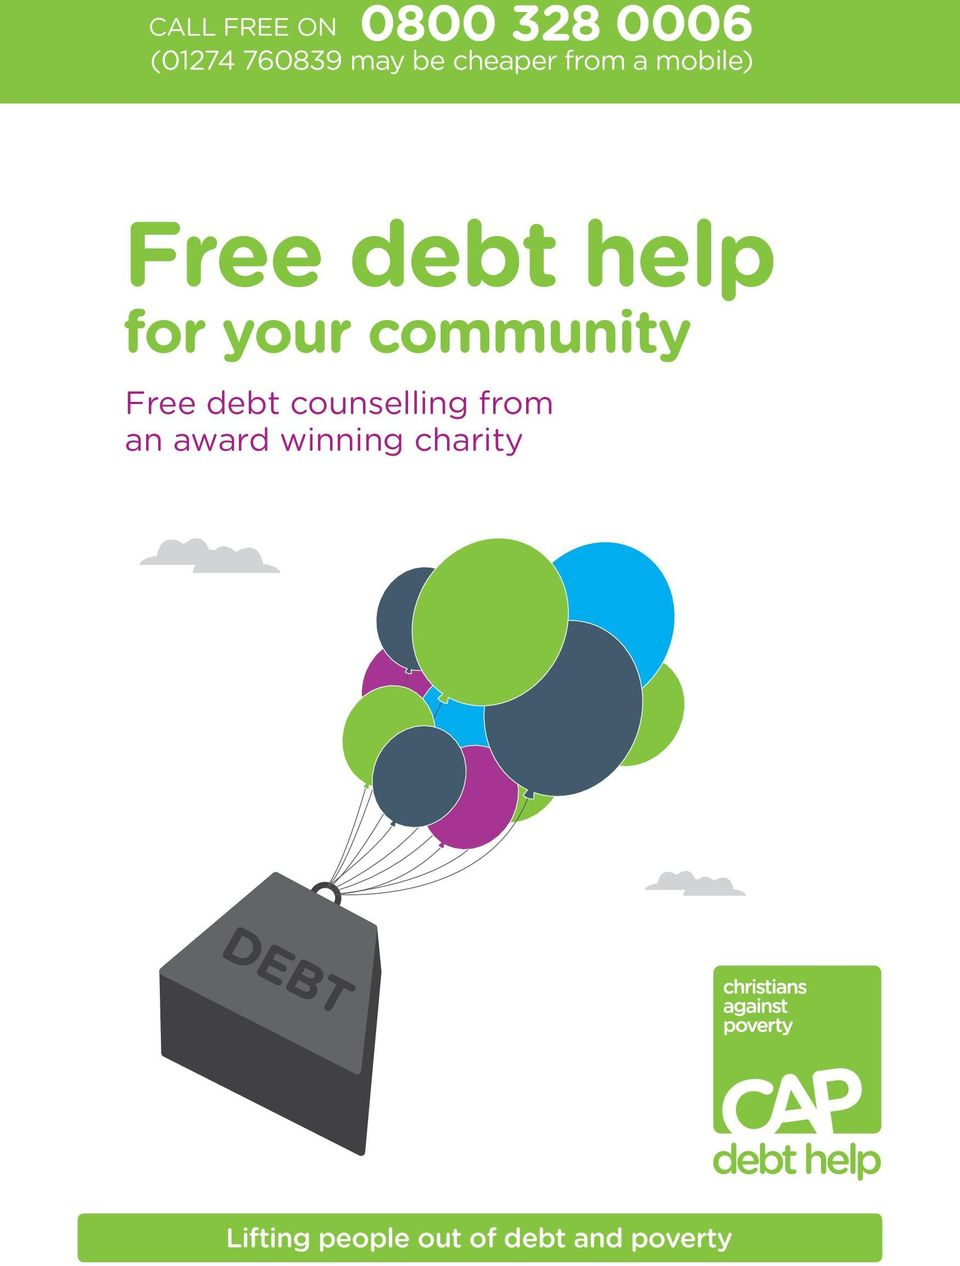 community Free debt counselling from an award